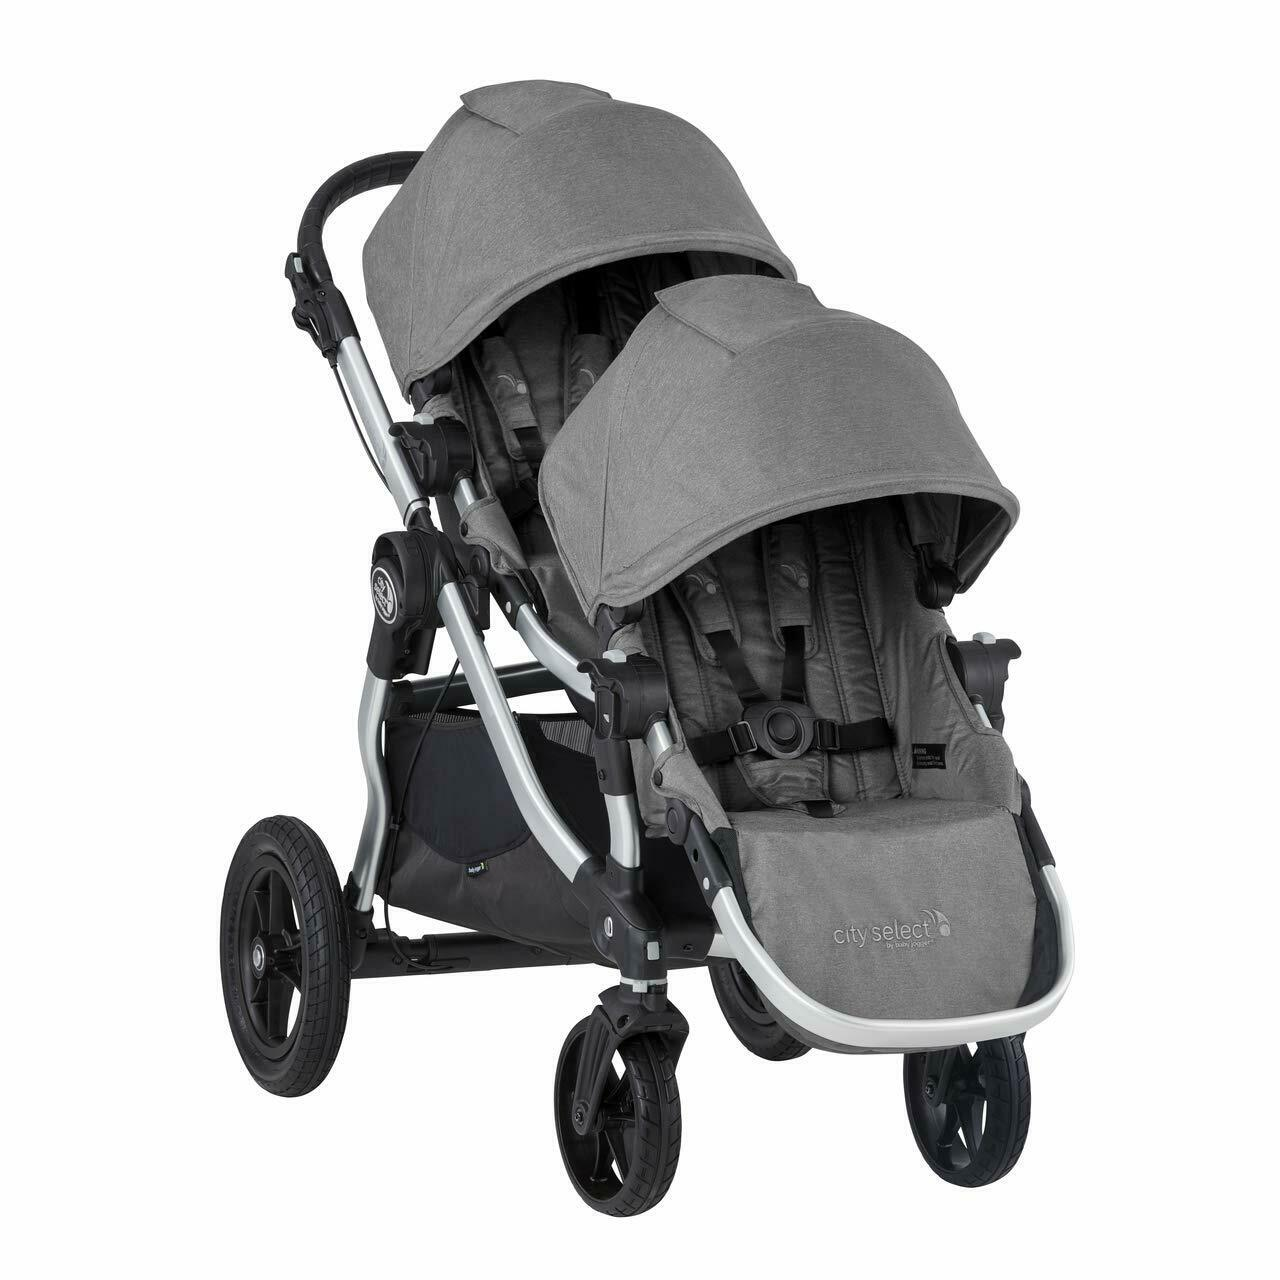 Baby Jogger 2019 City Select Double Stroller w/ 2nd Seat Kit - Slate